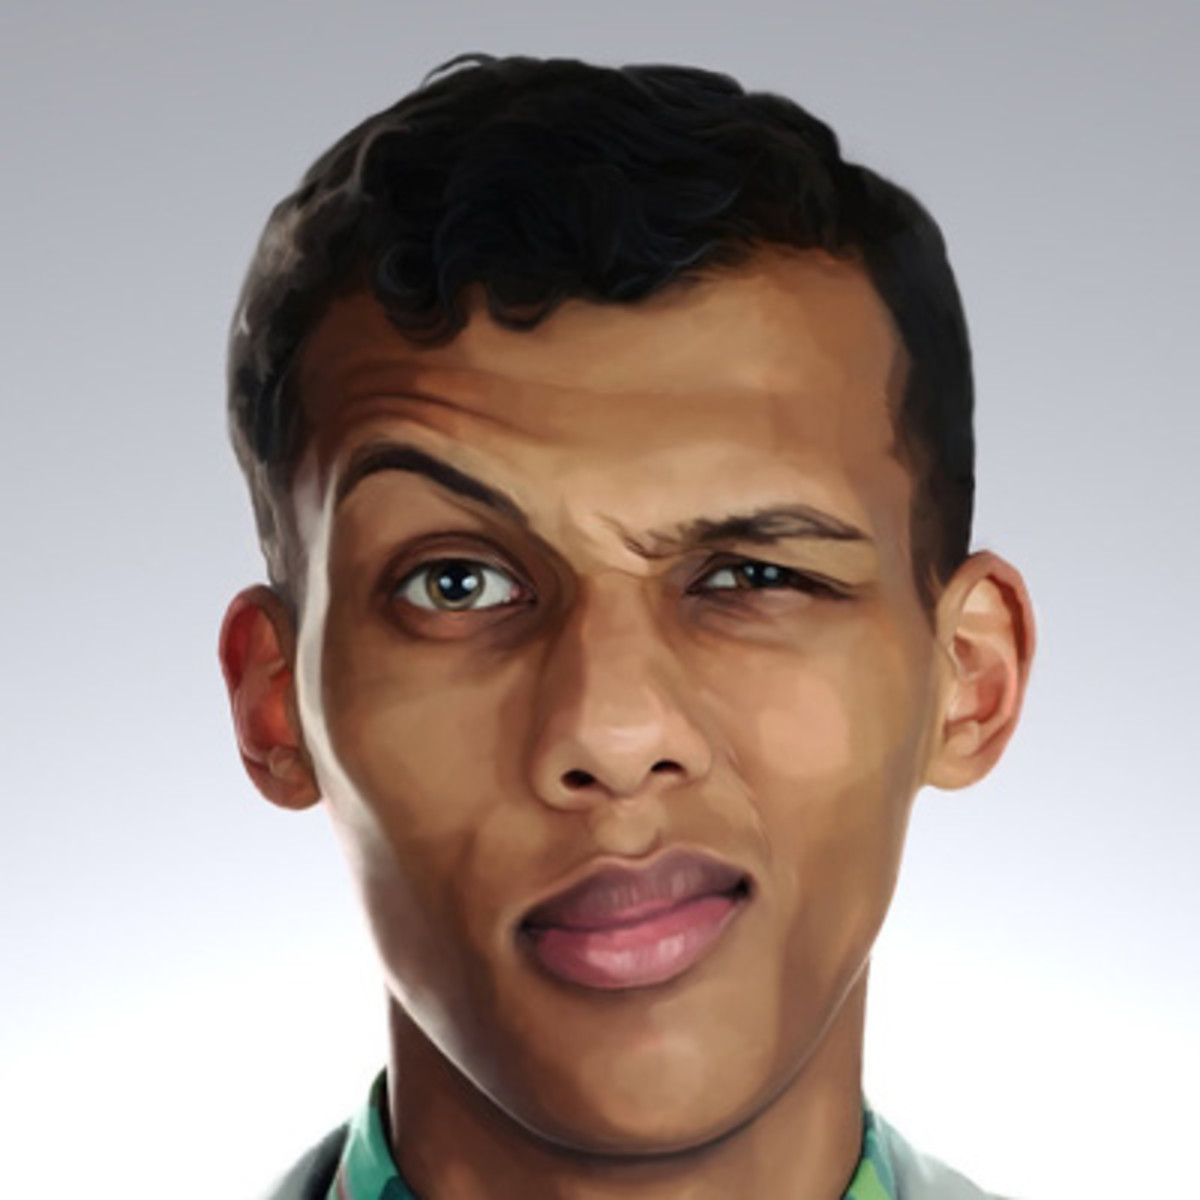 stromae-fan-art.jpg